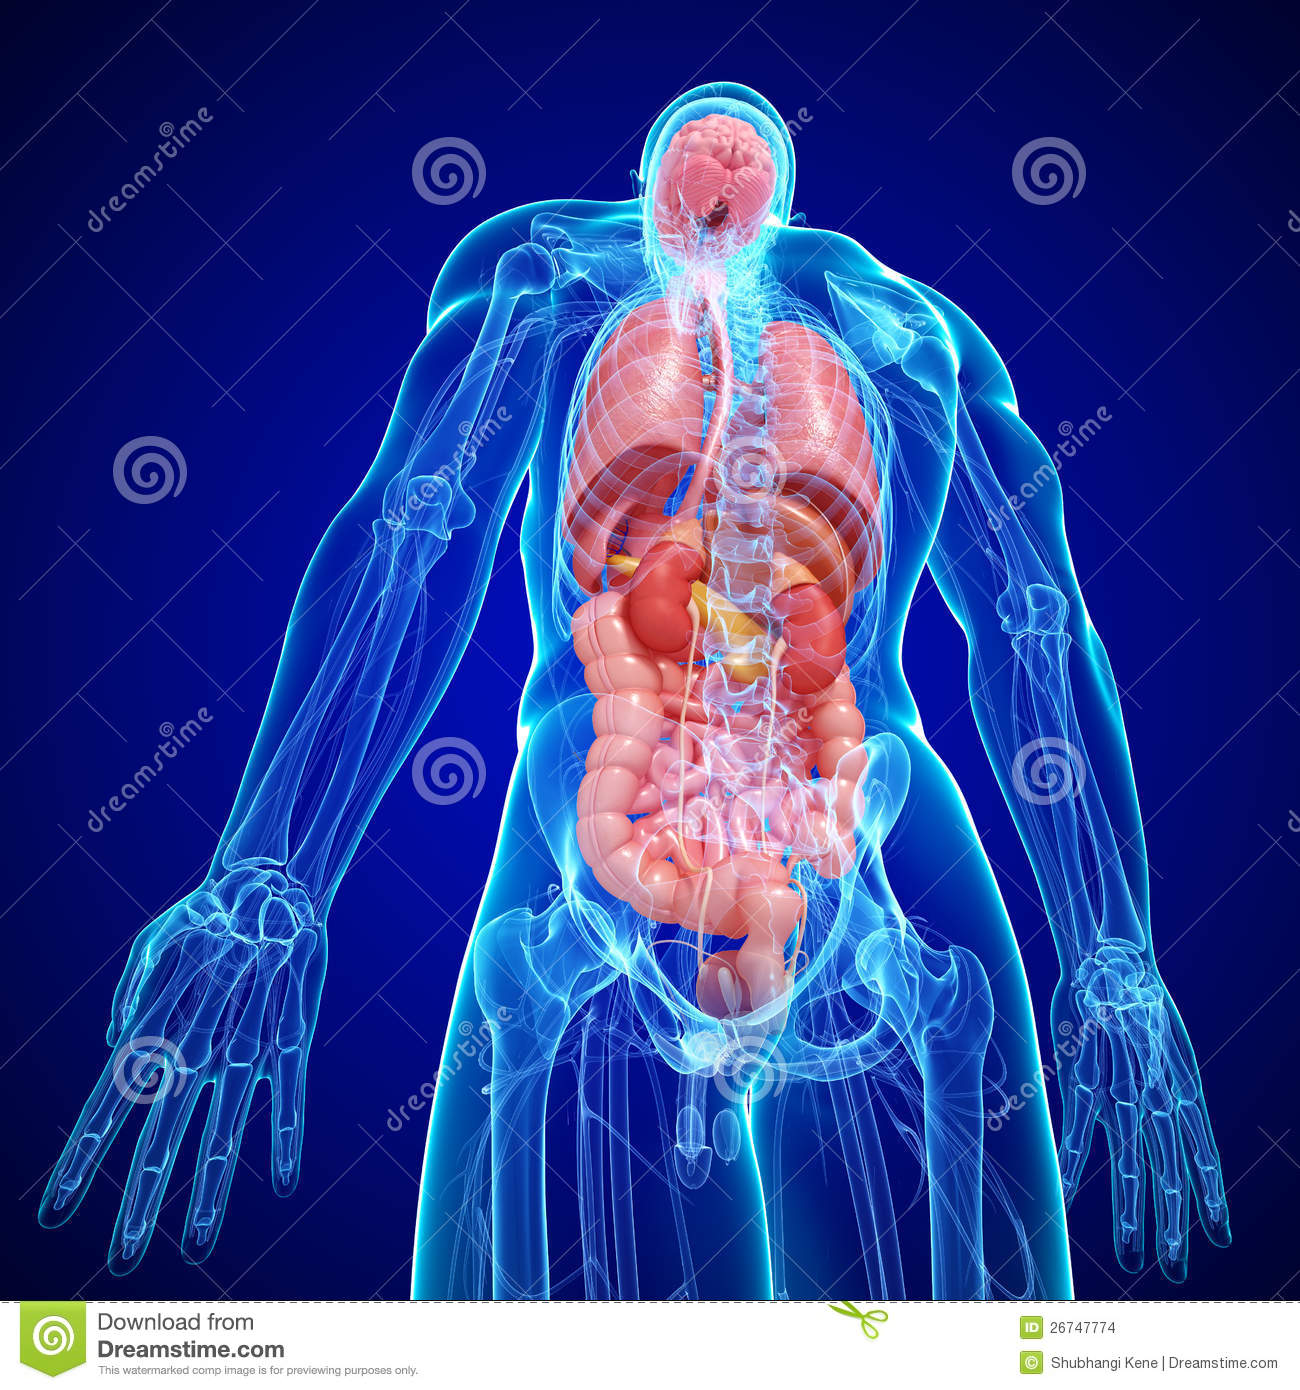 Anatomy Of Human Body Internal Structure Stock